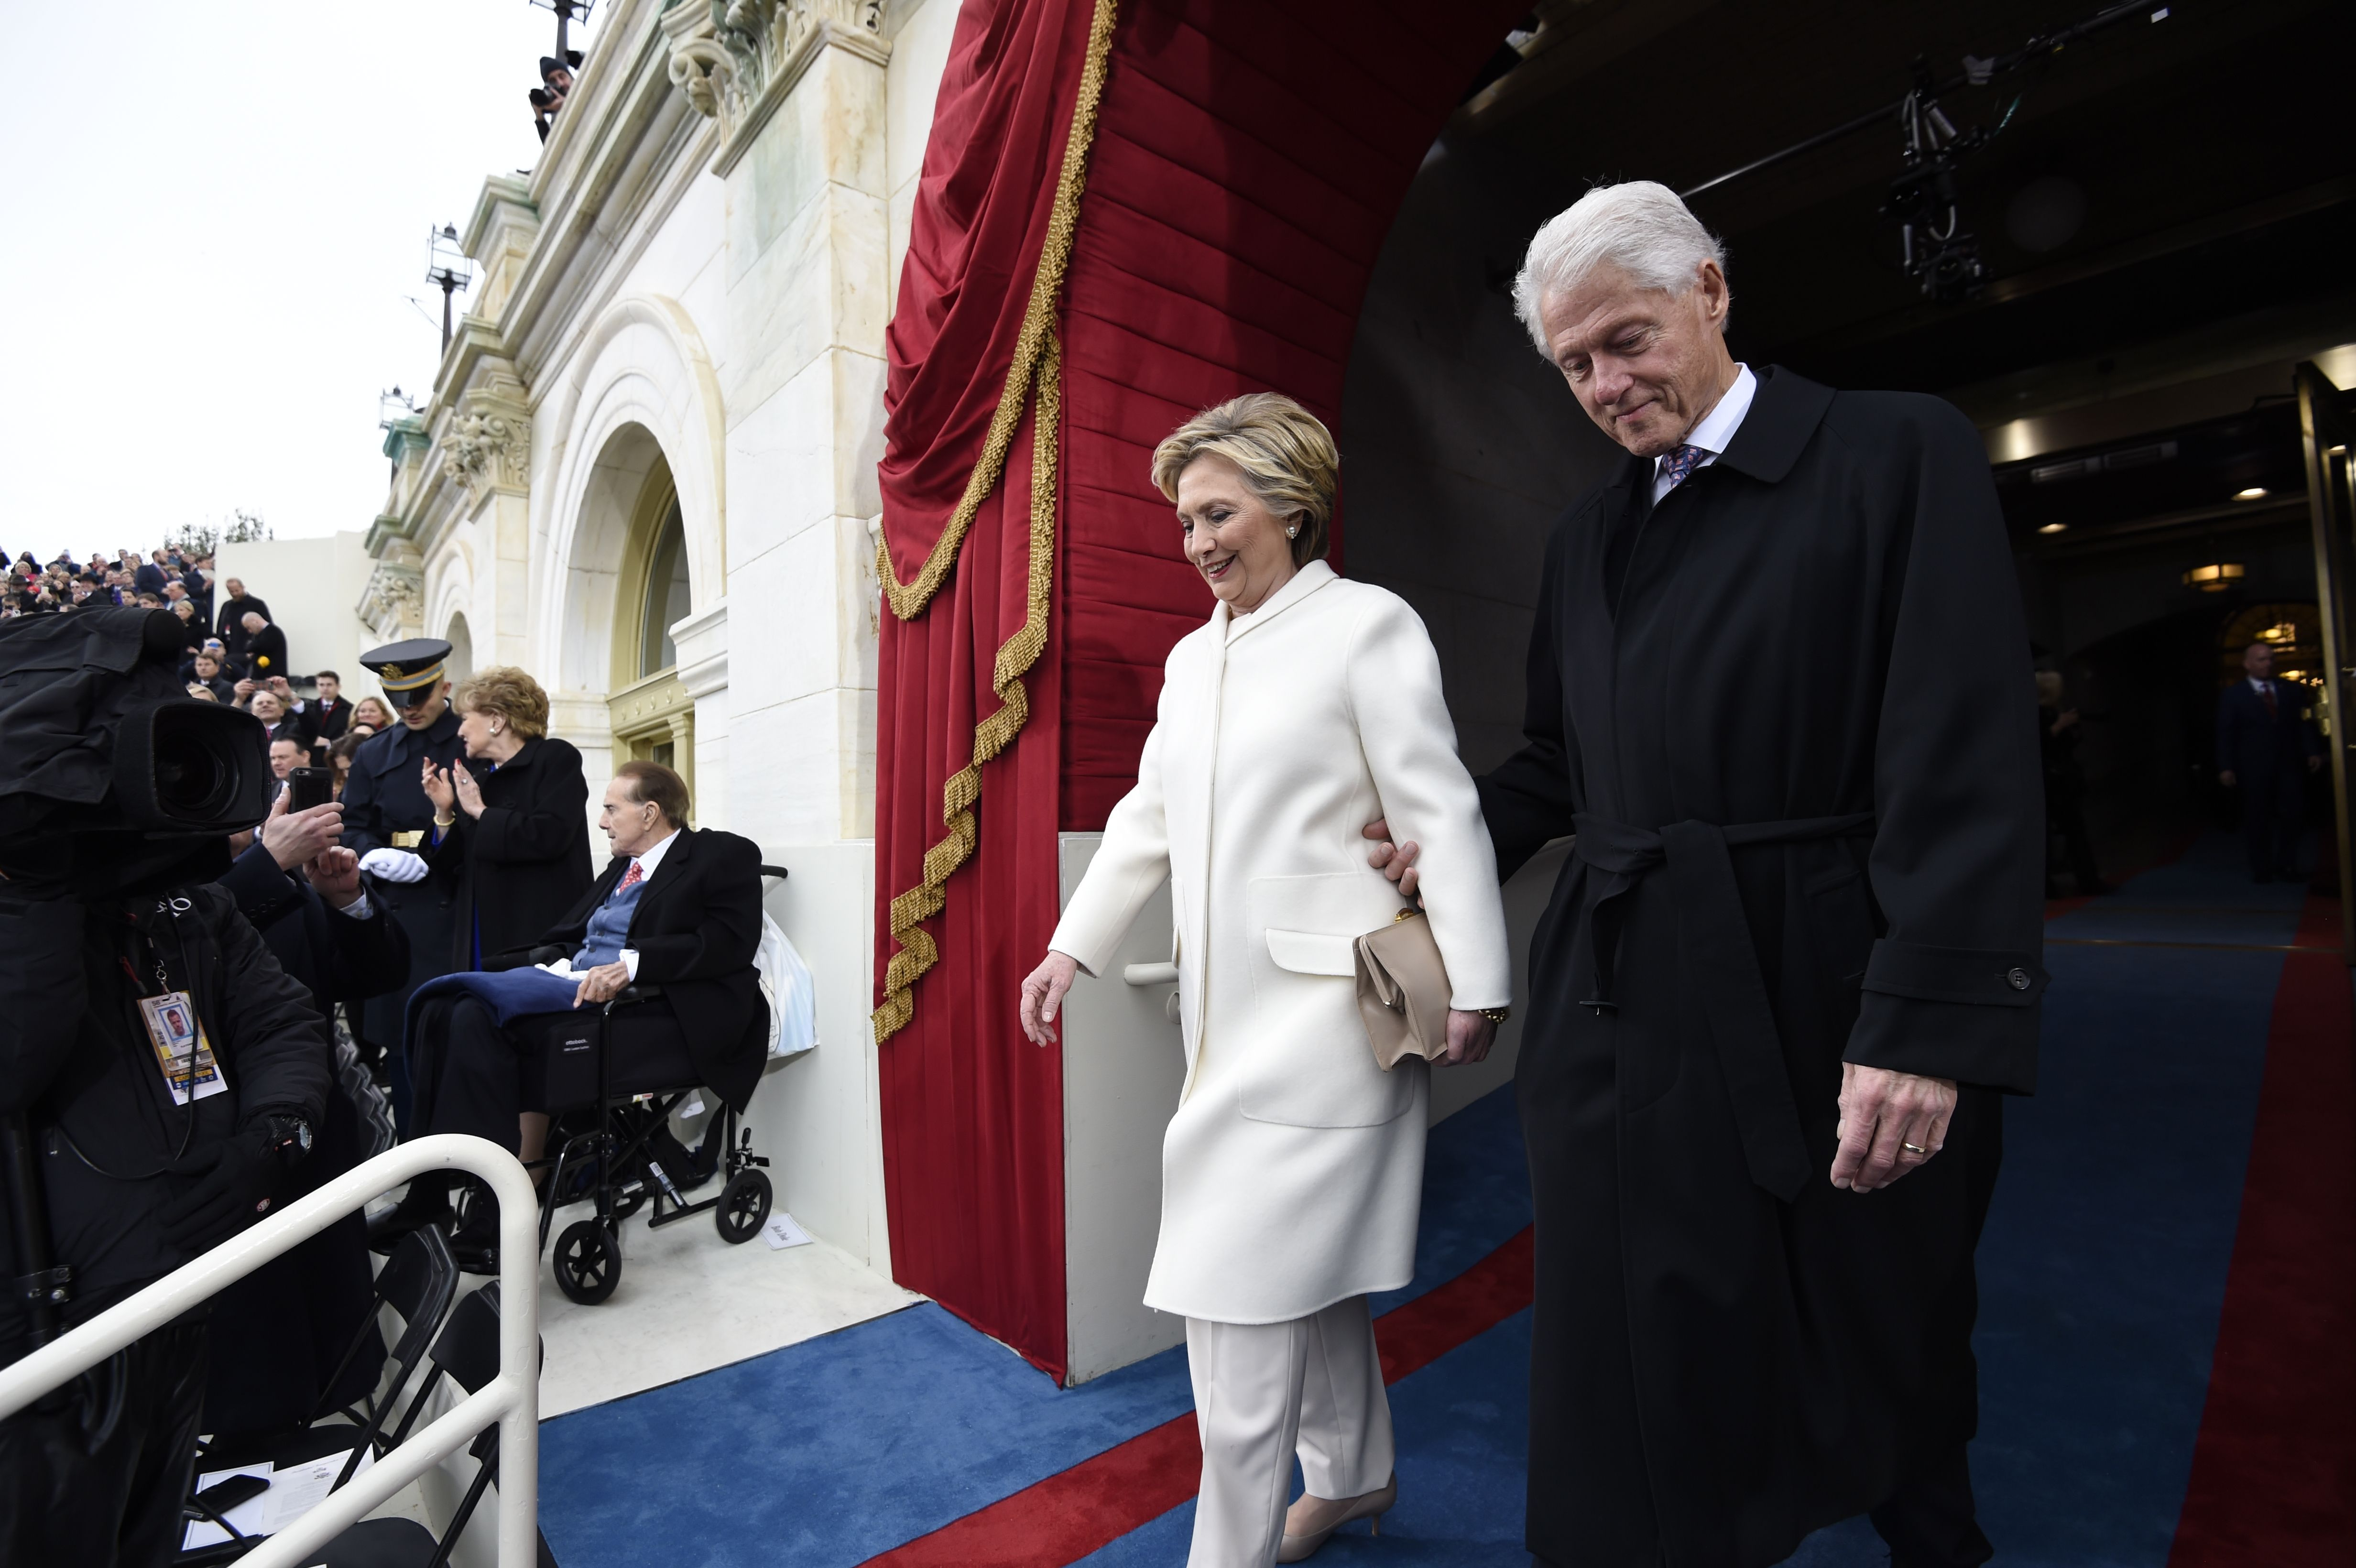 Former US President Bill Clinton and First Lady Hillary Clinton arrive for the Presidential Inauguration of Donald Trump at the US Capitol in Washington, DC, January 20, 2017. / AFP / POOL / SAUL LOEB (Photo credit should read SAUL LOEB/AFP/Getty Images)